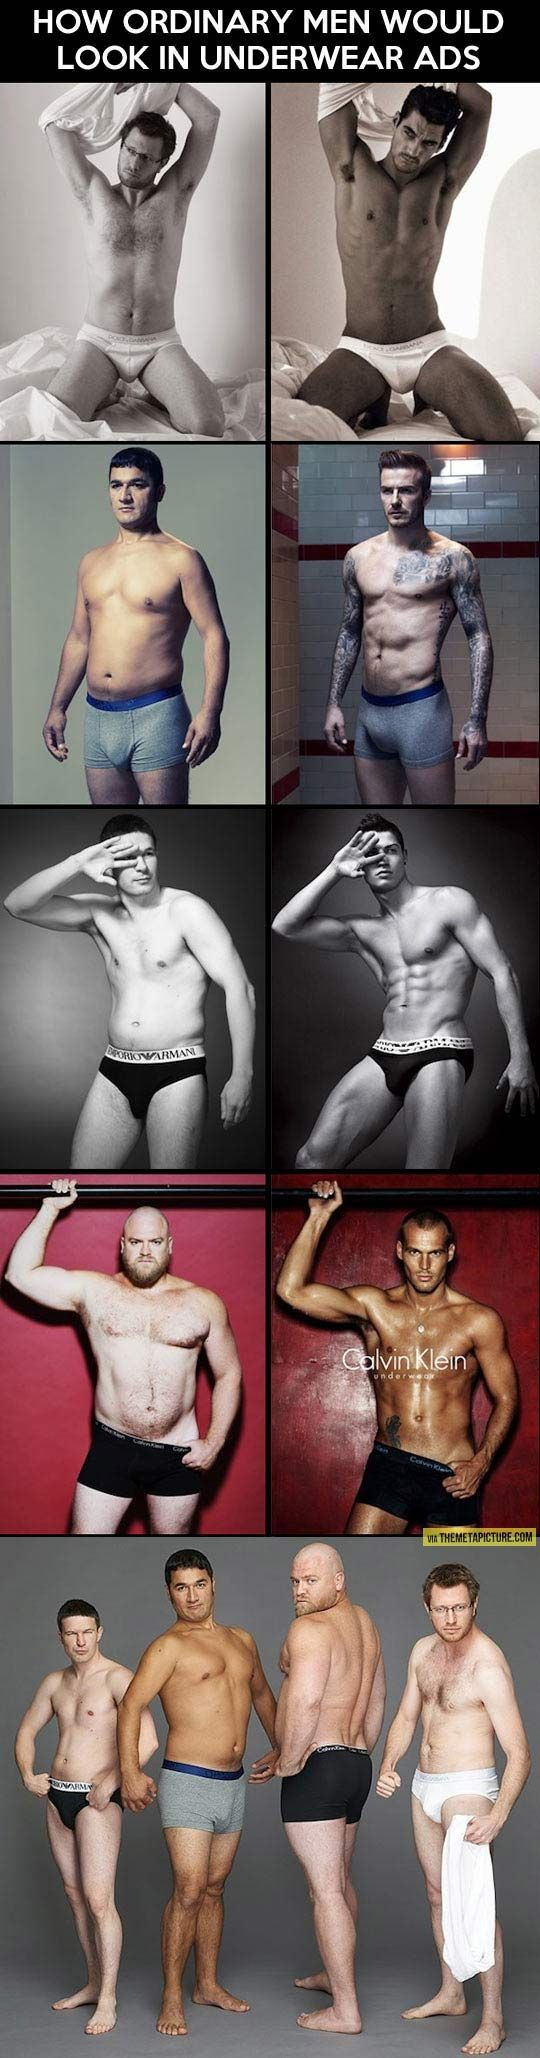 How Ordinary Men Would Look In Underwear Ads - Sarcastic Charm